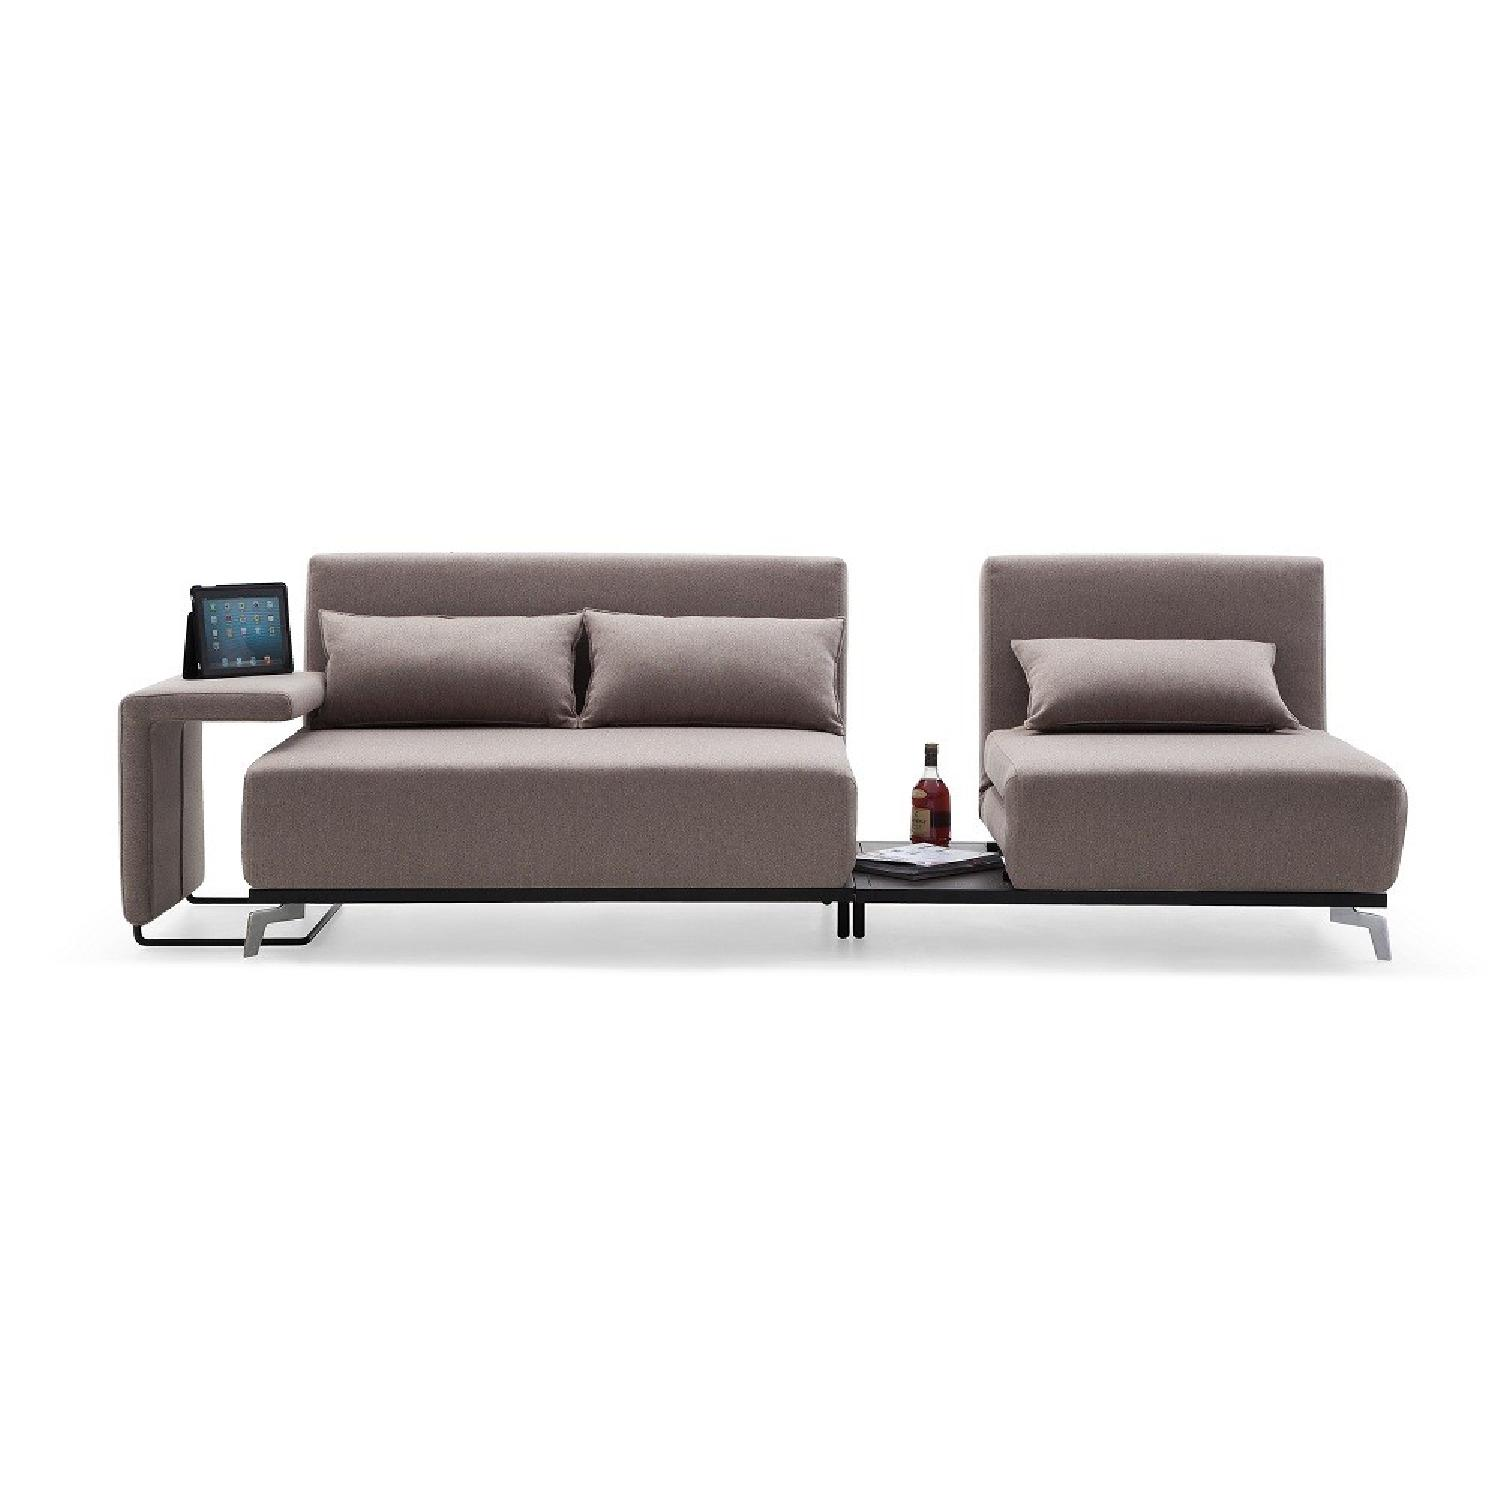 dwr bay sleeper sofa review wrought iron marble table the smart double seat bed aptdeco